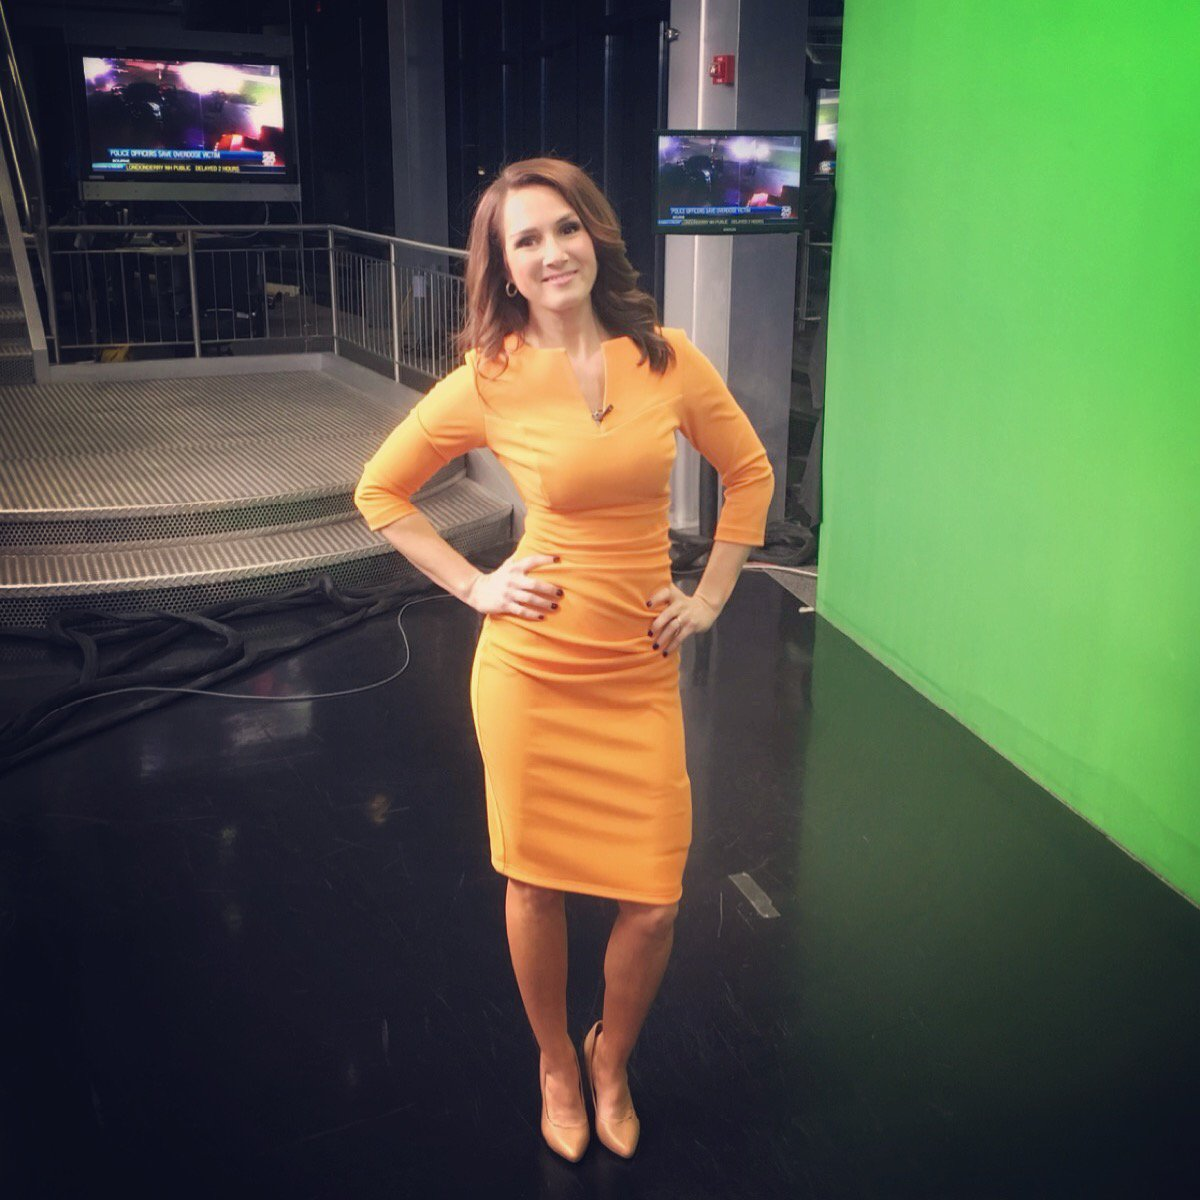 shiri spear on twitter whatcha think traffic cone or candy corn halloweencostume boston newengland